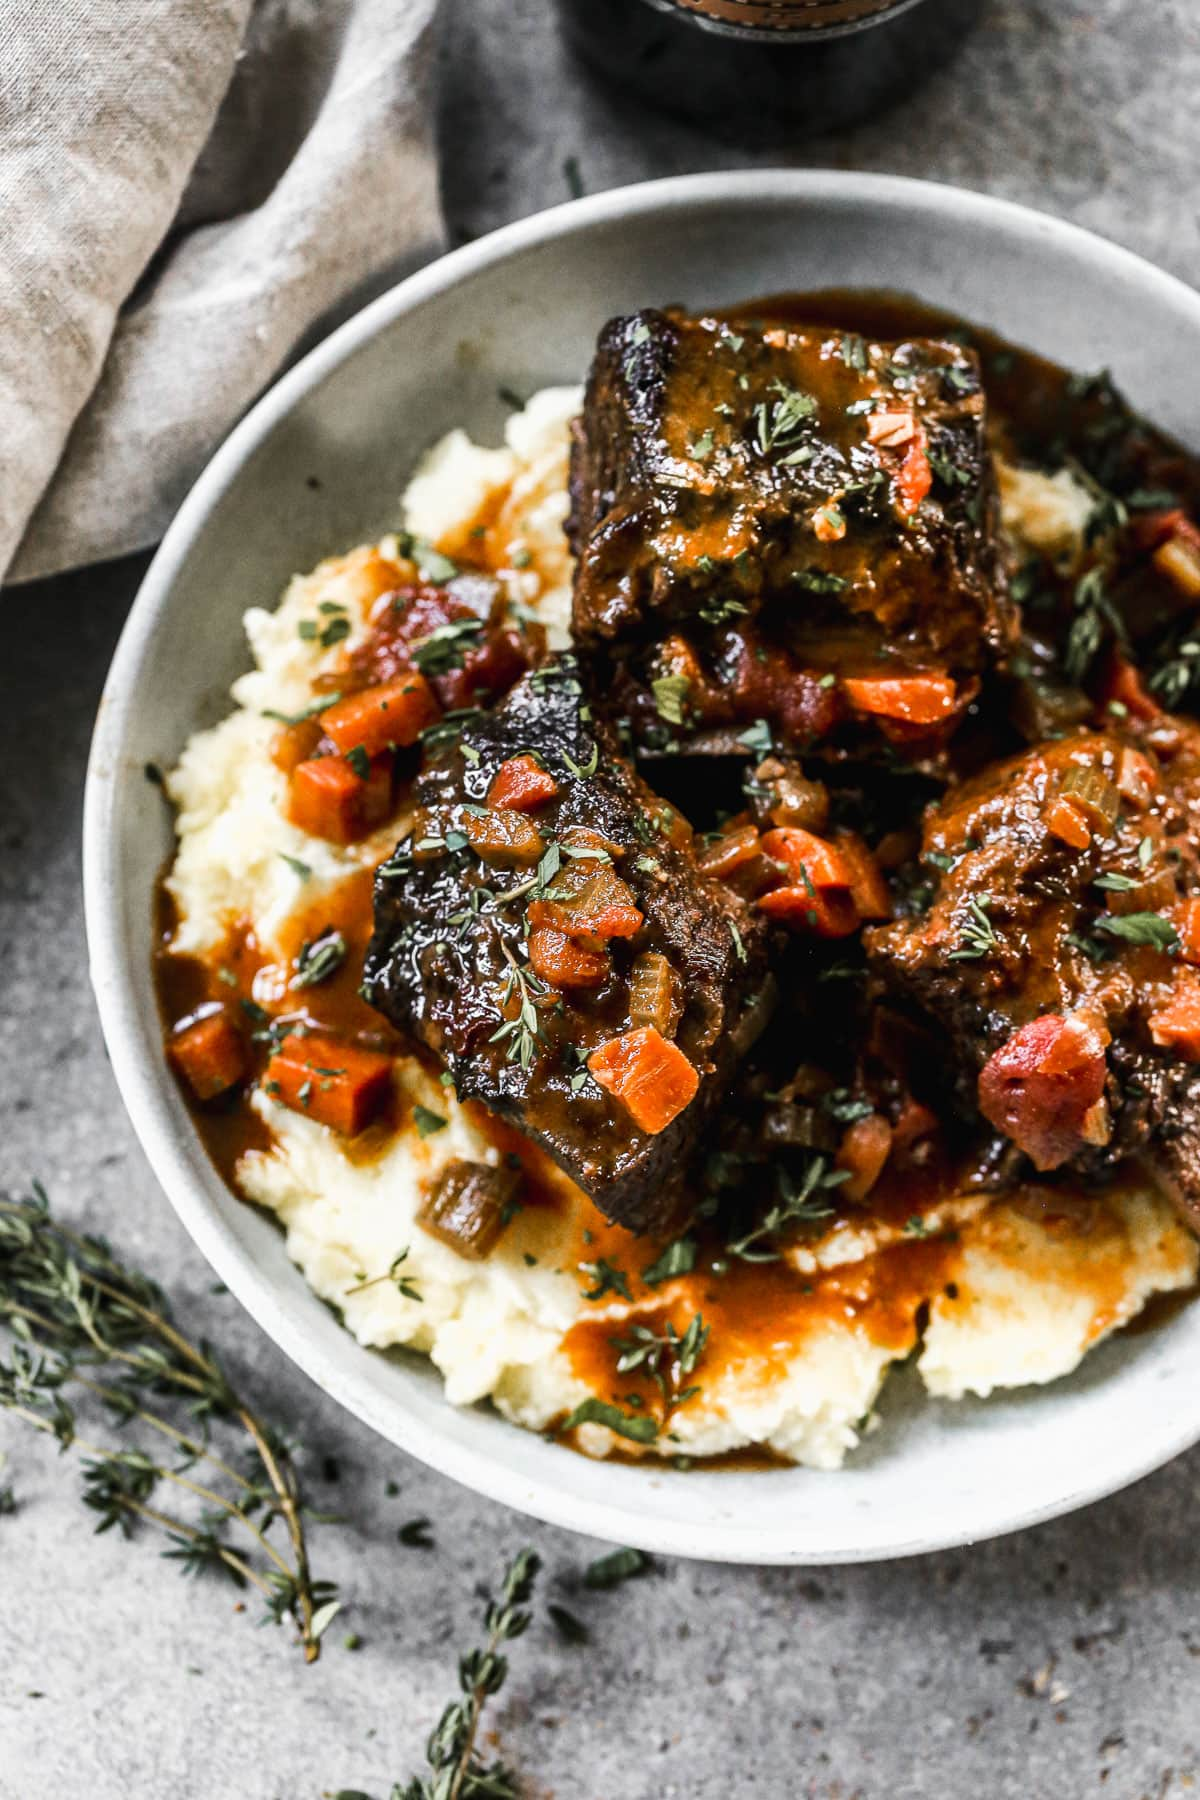 Braised Short Rib Pasta with Horseradish Cream